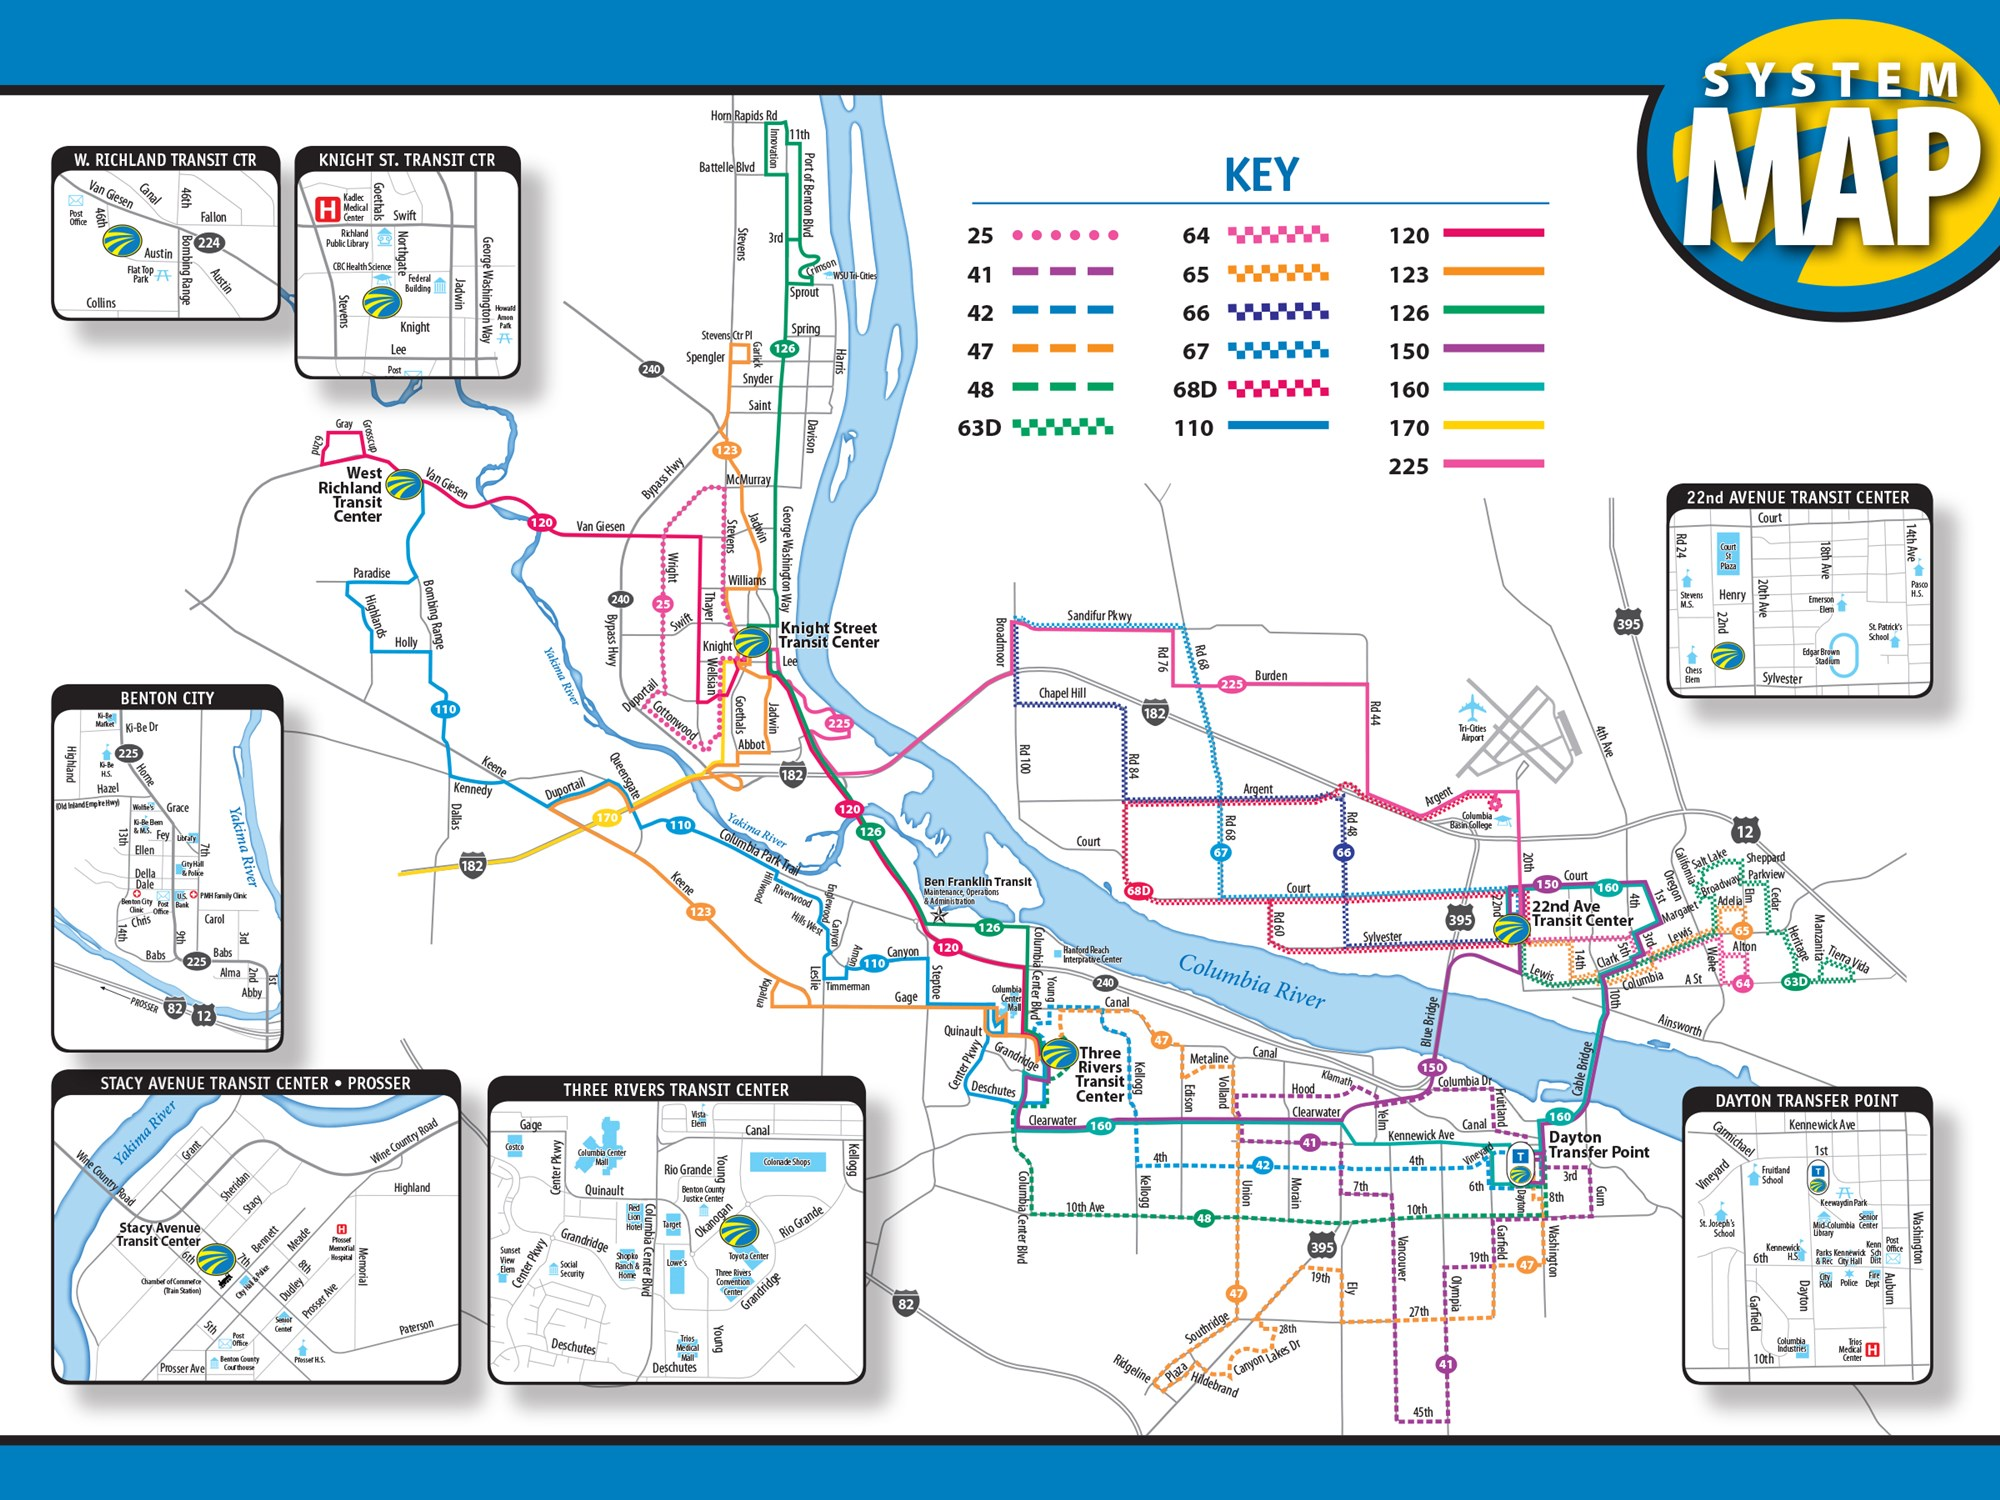 System Map & Routes - Bus Service   Ben Franklin Transit on seattle hospital map, seattle lightning map, seattle car map, seattle metro map, seattle d line map, seattle bike routes map, seattle bar map, king county metro map, seattle washington transportation system, seattle trolleybus map, seattle playground map, seattle city map, seattle bike path map, seattle subway system map, seattle construction map, seattle park map, seattle historic streetcar map, seattle tree map, capitol hill seattle map, seattle annexation map,